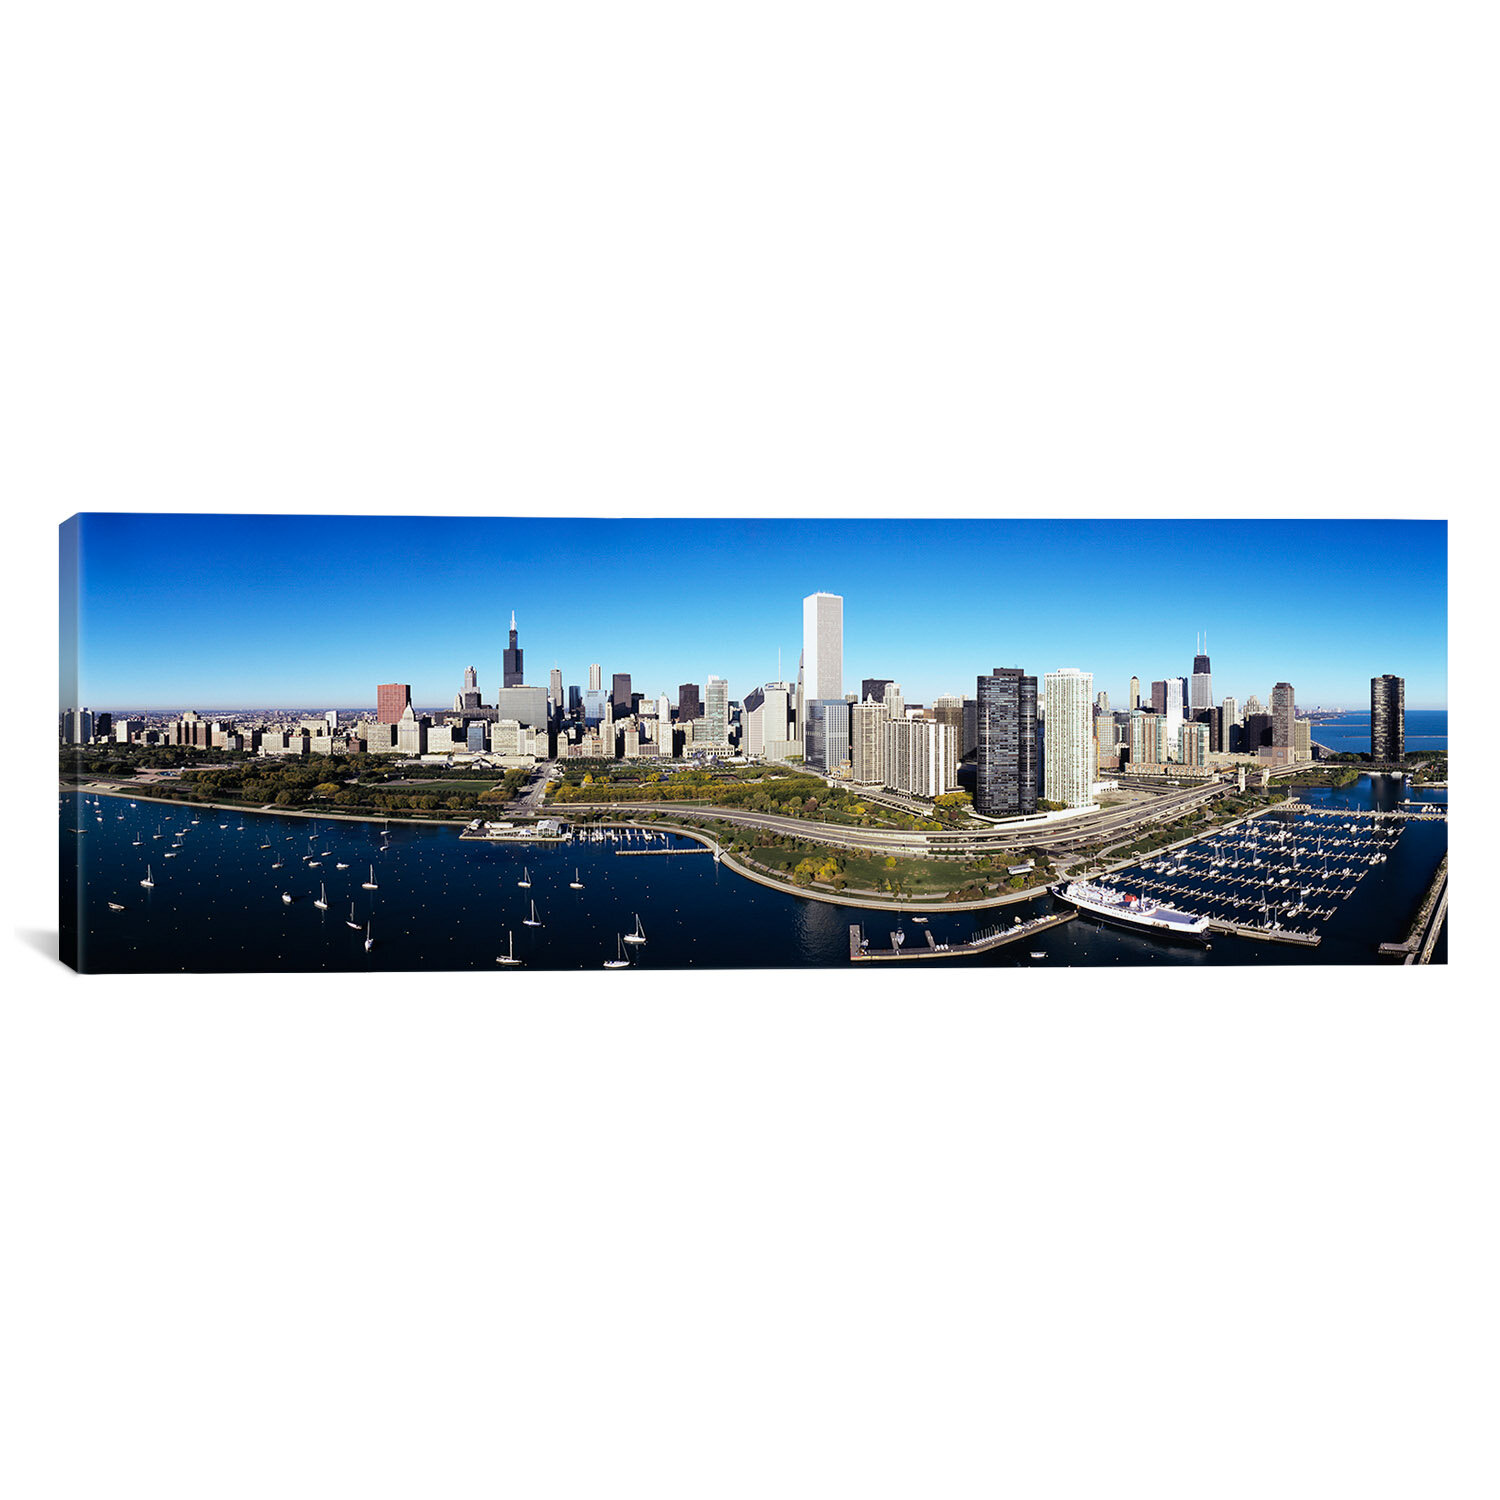 Ebern Designs Panoramic Boats Docked At A Harbor Chicago Illinois Photographic Print On Canvas Wayfair